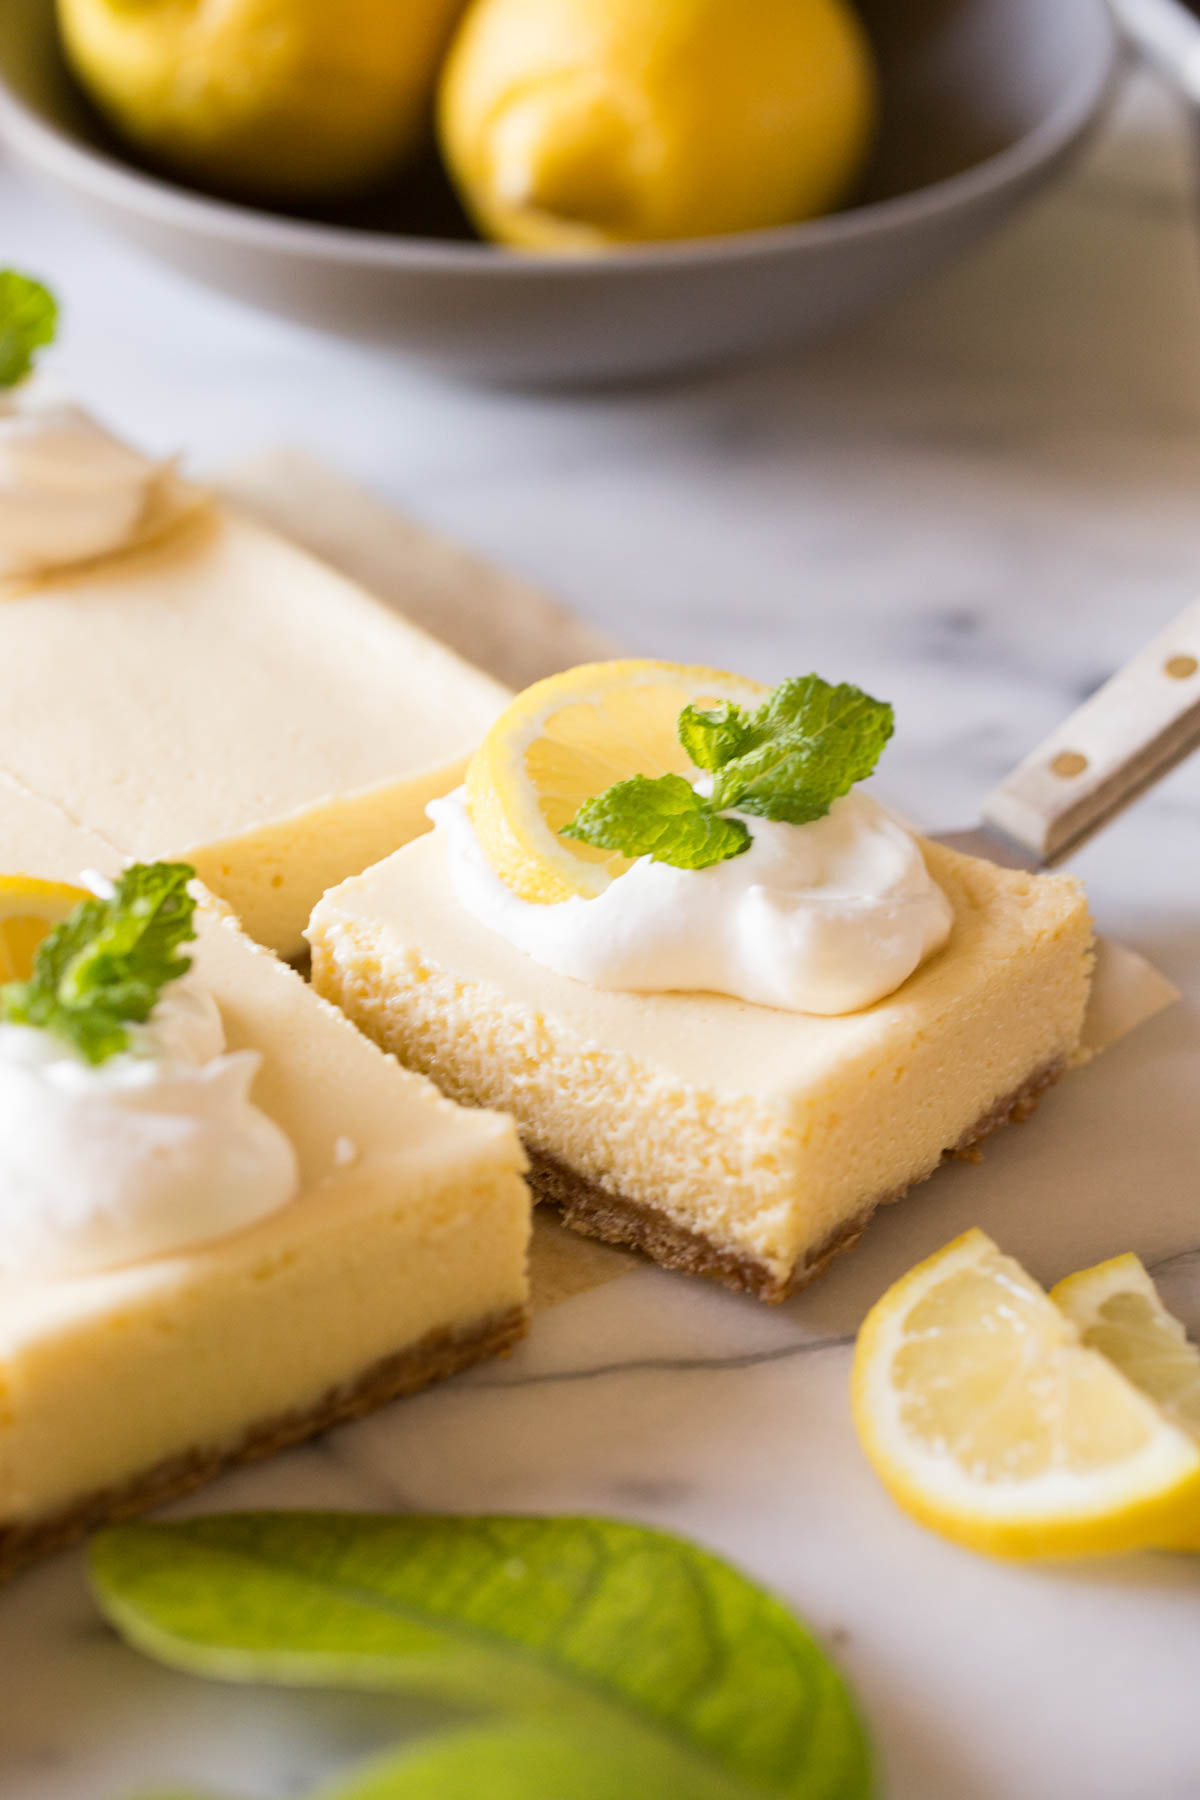 Close up view of Best Creamy Lemon Bar being lifted out of the pan with fresh lemons in the background.